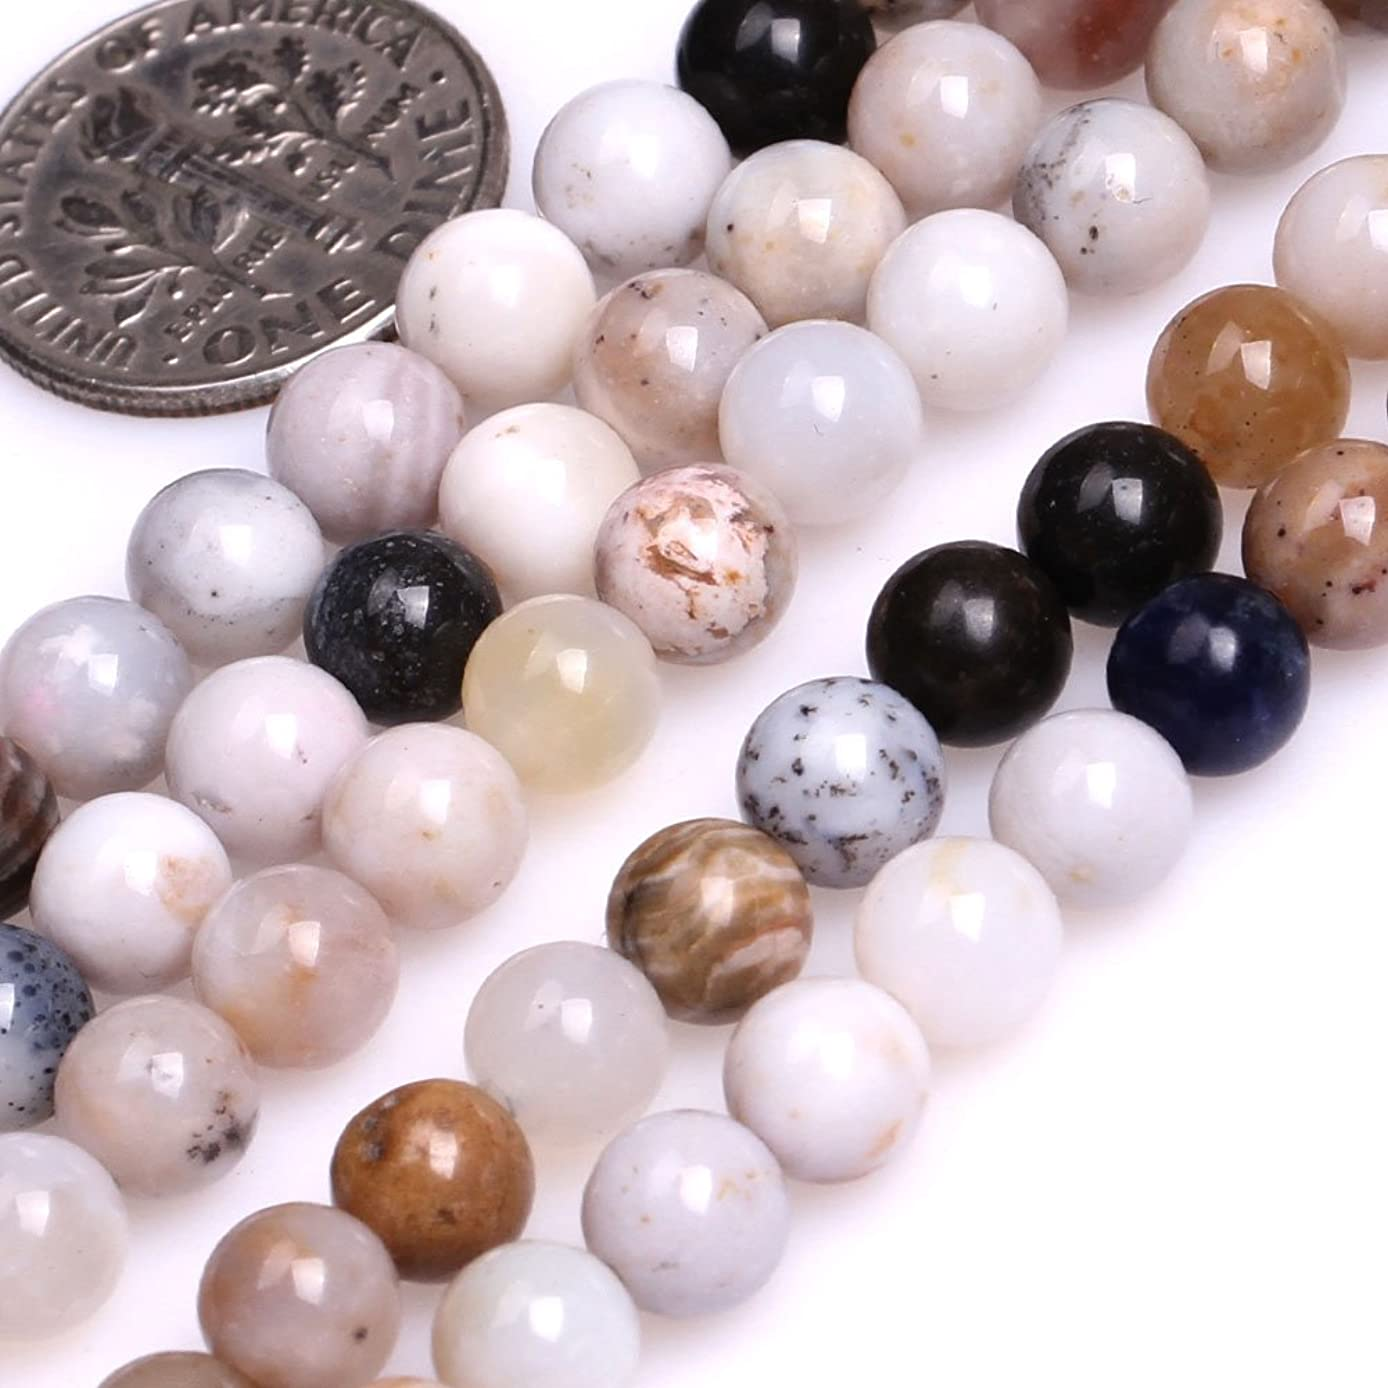 GEM-inside Natural 6mm Round Multicolored Dendritic Agate Beads for Jewelry Making Strand 15